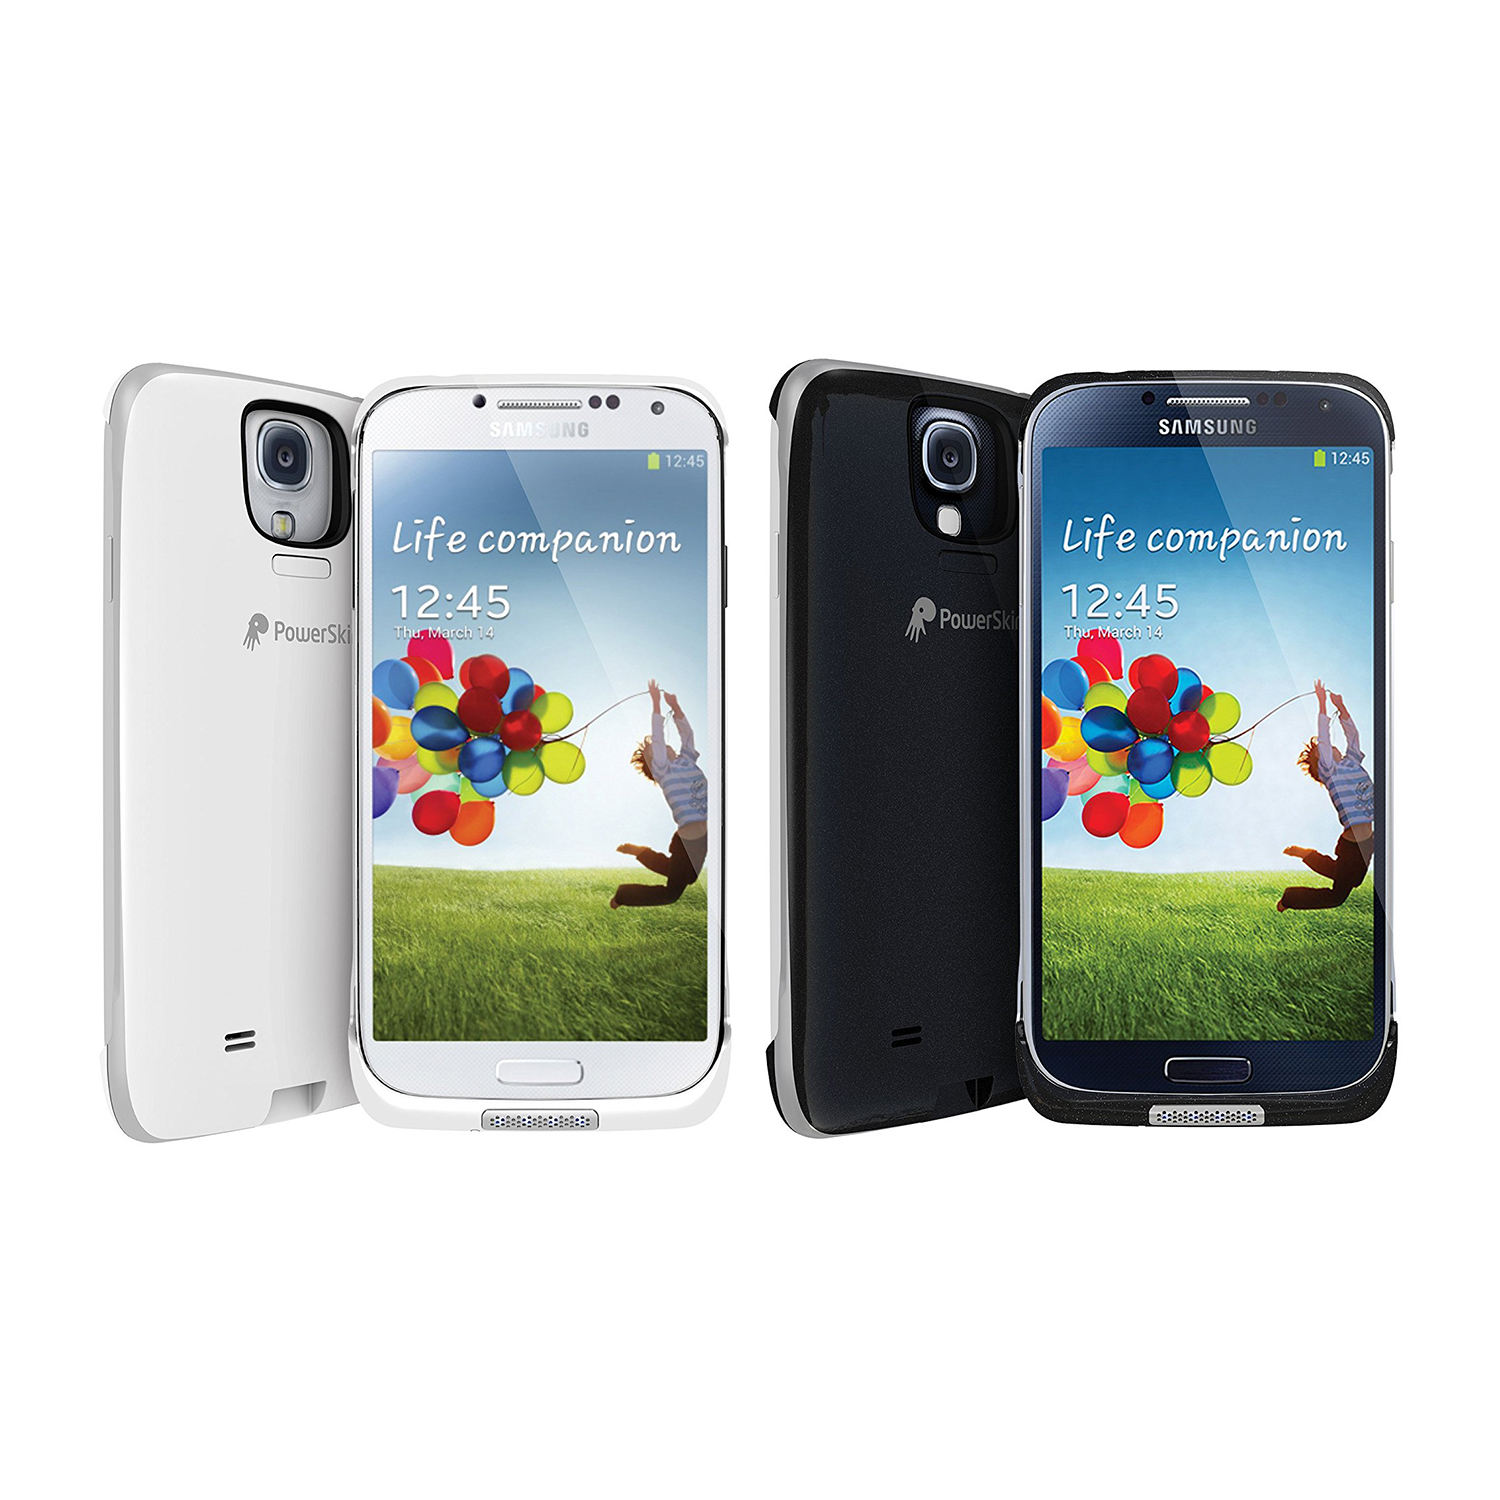 cheap for discount 0235d 6d788 Details about PowerSkin Spare 1600mAh Rechargeable Extended Battery Case  for Samsung Galaxy S4